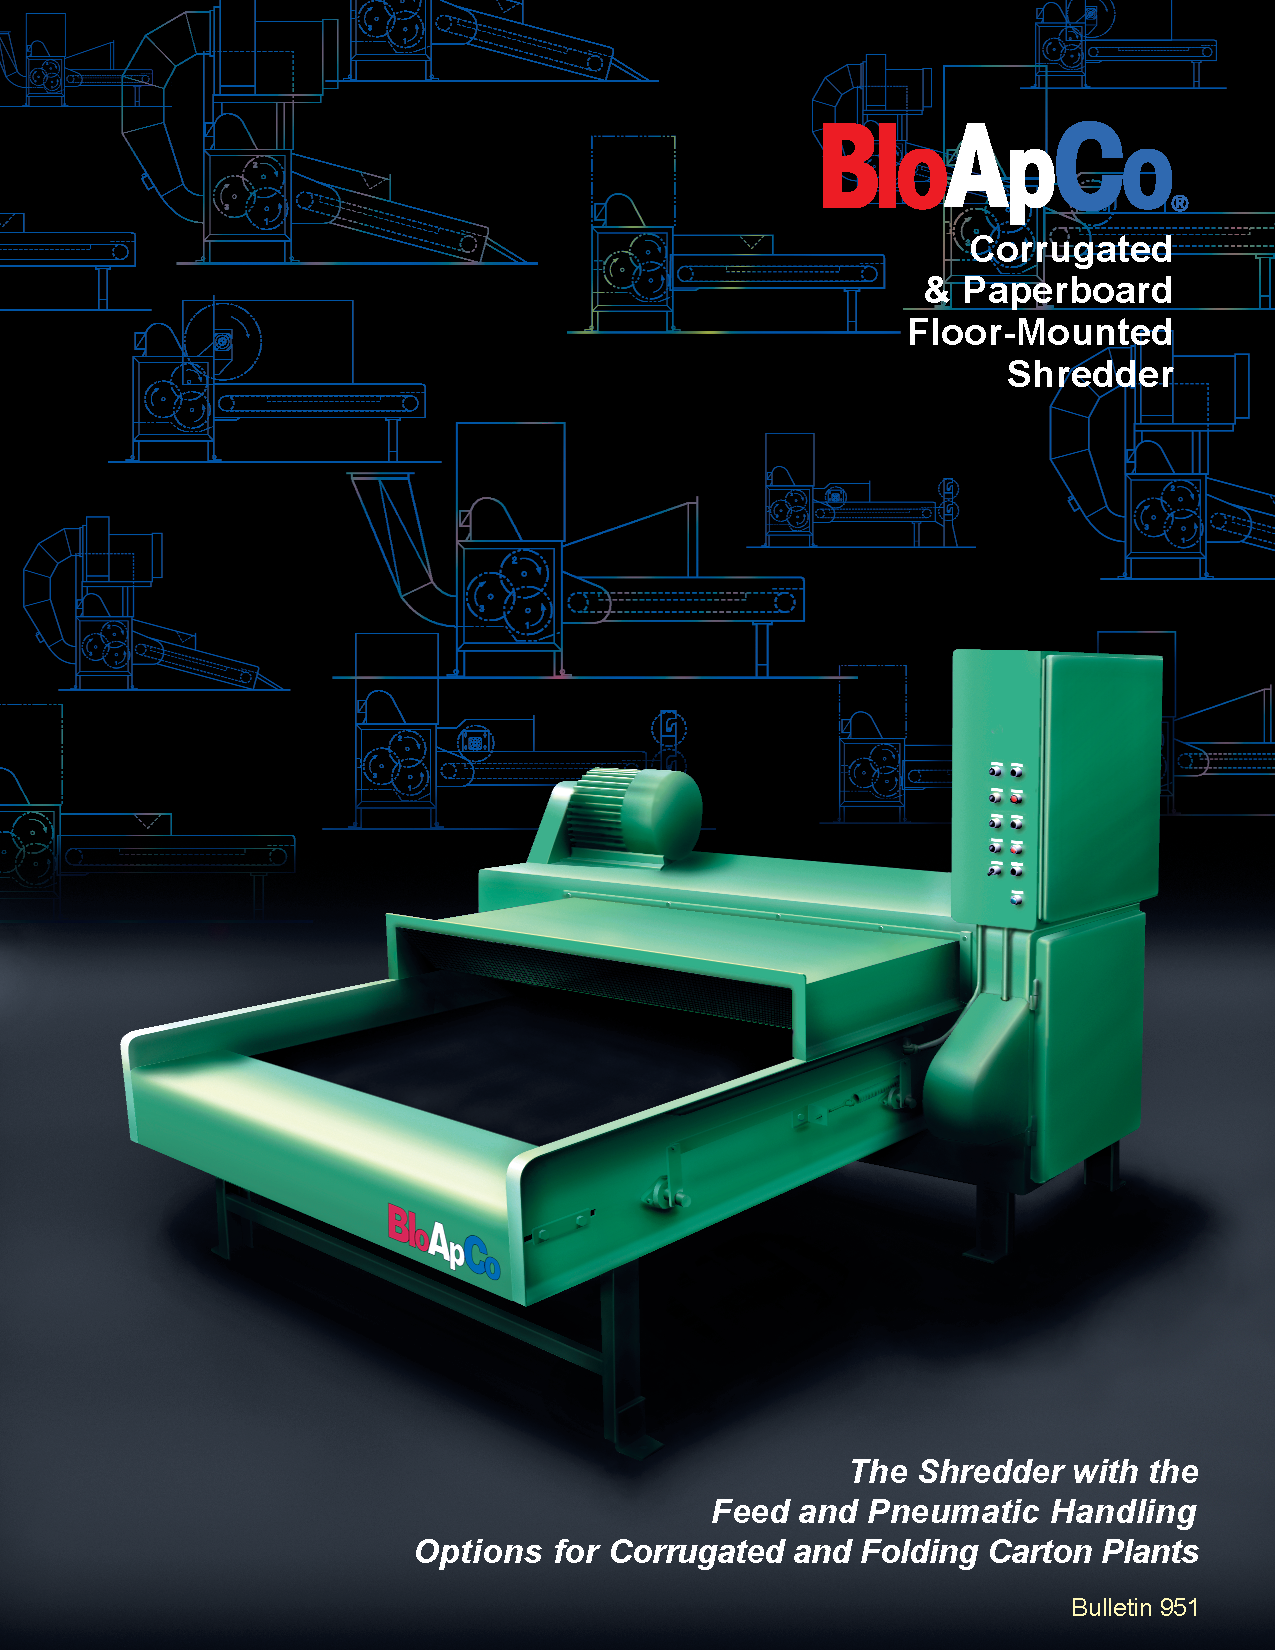 Learn more about Floor Mounted Shredders and pneumatic handling options by viewing the BloApCo Bulletin 951.